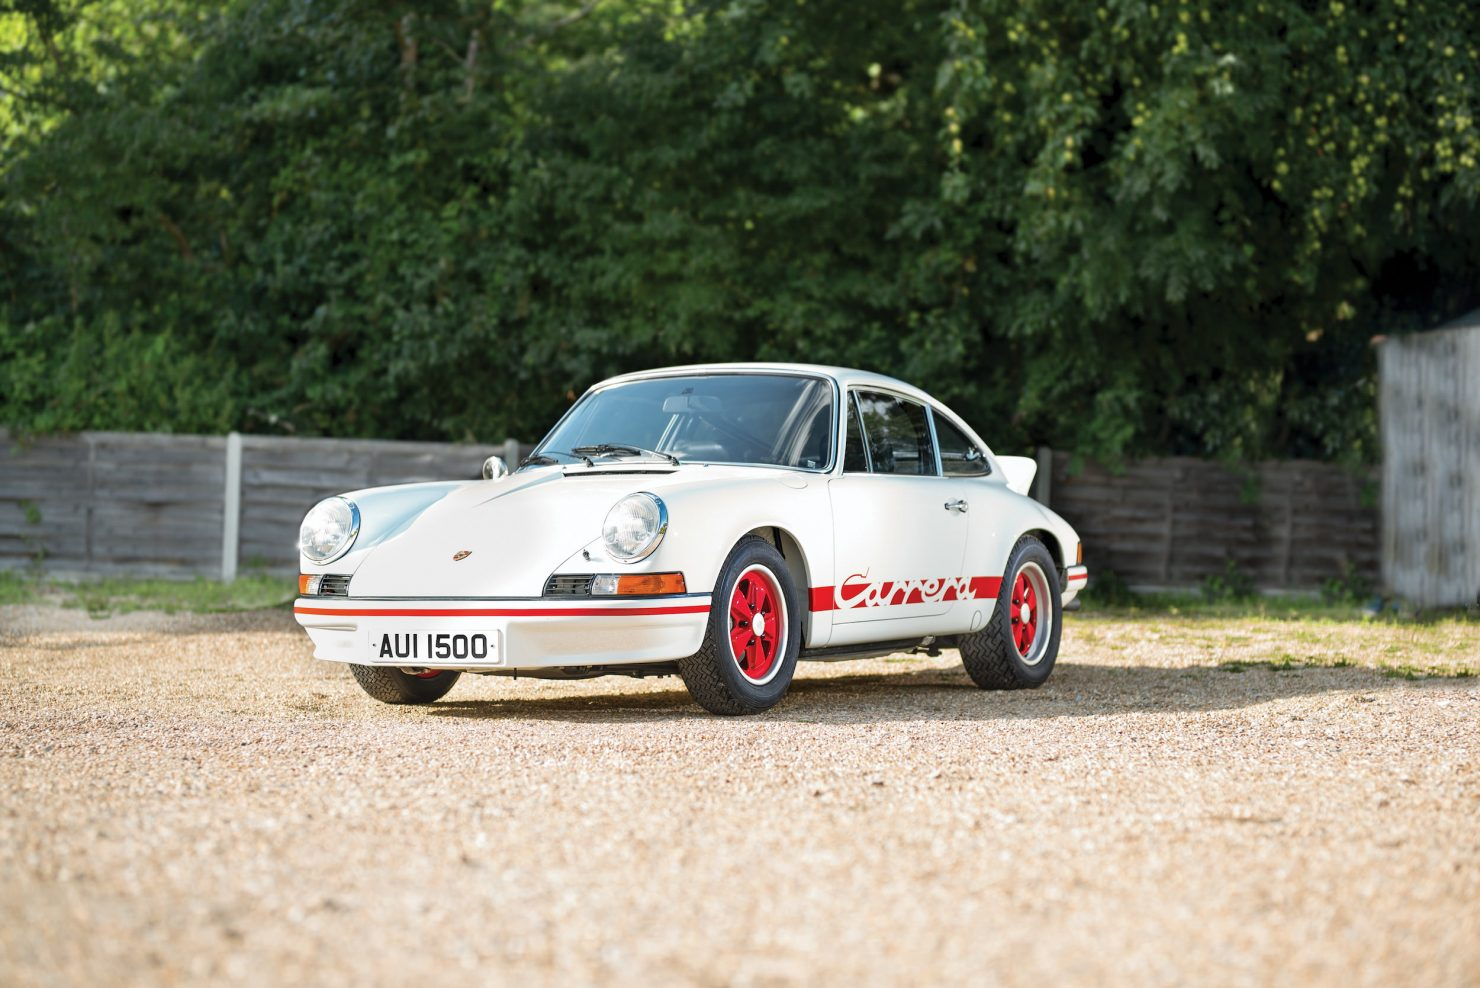 Porsche 911 Carrera RS 2.7 1480x988 - 1973 Porsche 911 Carrera RS 2.7 Lightweight